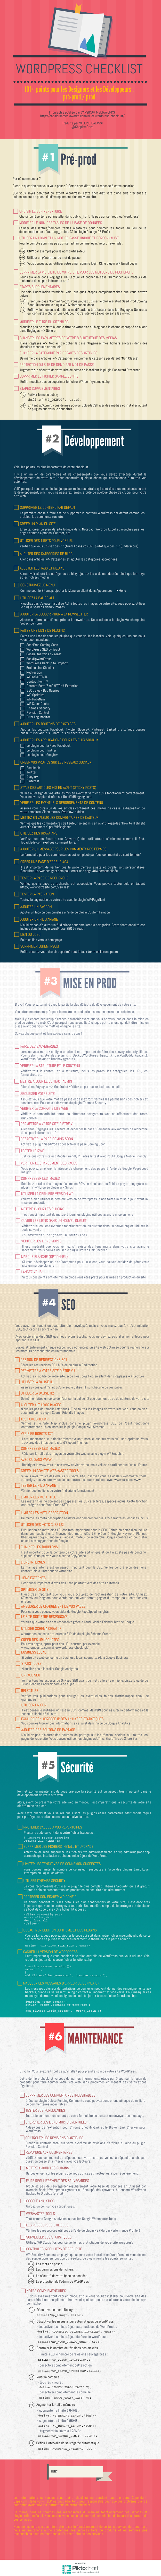 Checklist WordPress avant de mettre en ligne son site